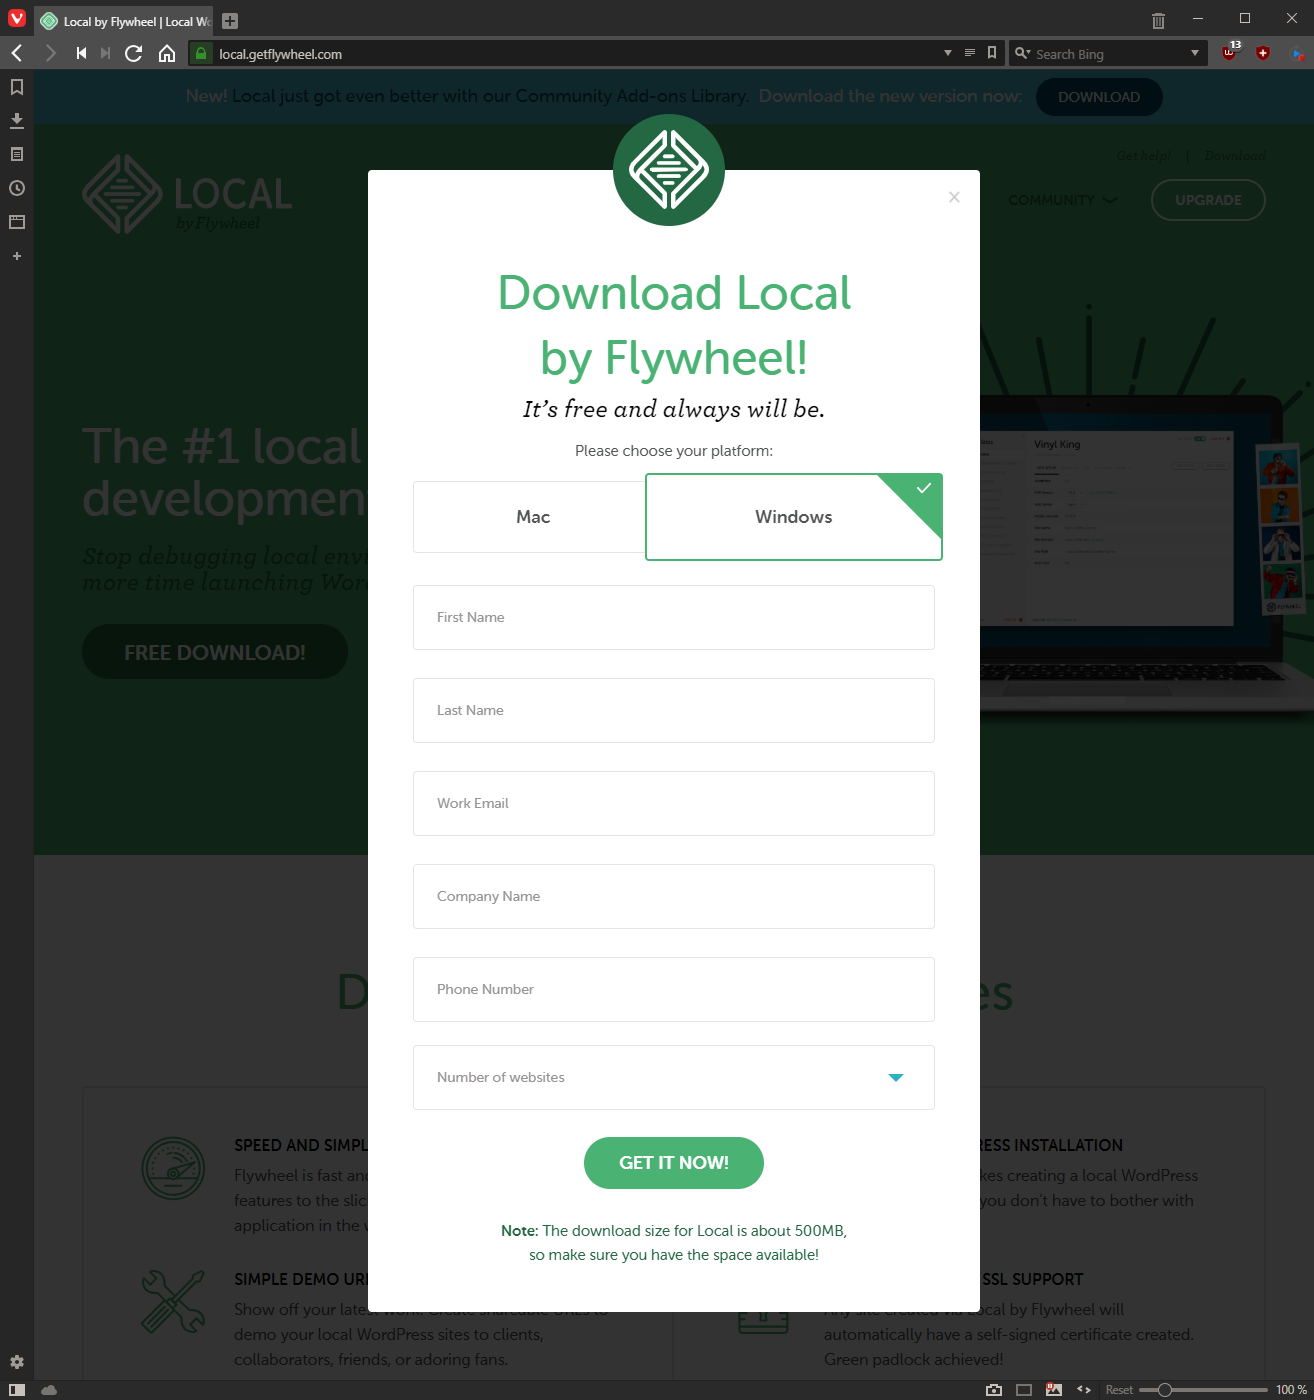 Download Local by Flywheel by selecting your OS and entering your details